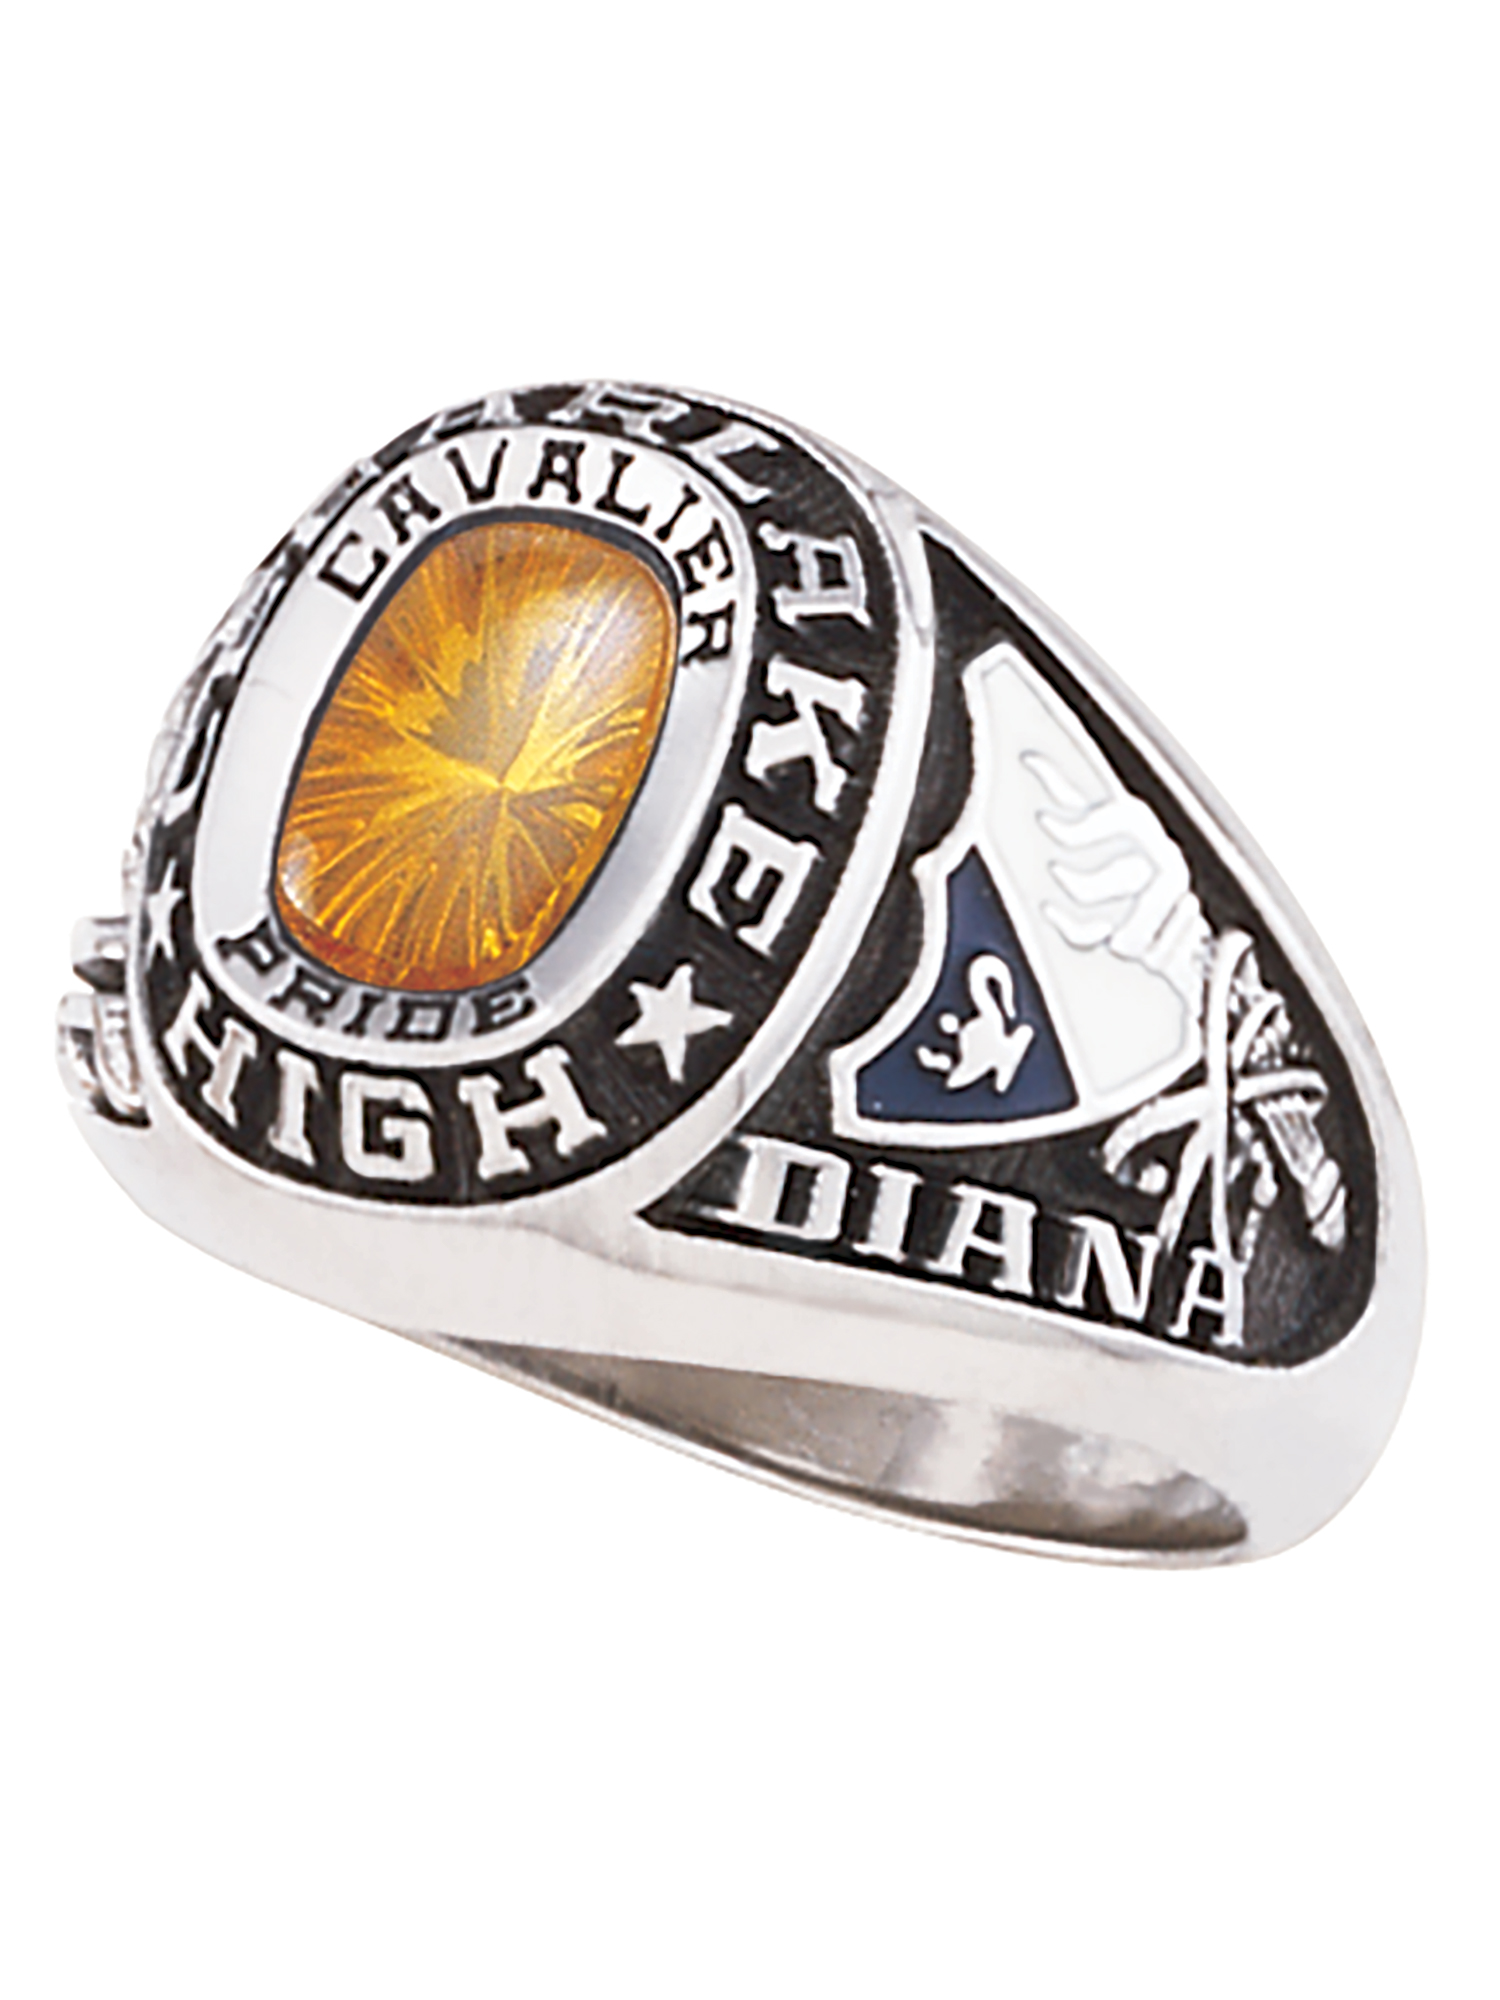 Keepsake Personalized Women's USA Class Ring available in Valadium, Silver Plus, Yellow and White Gold